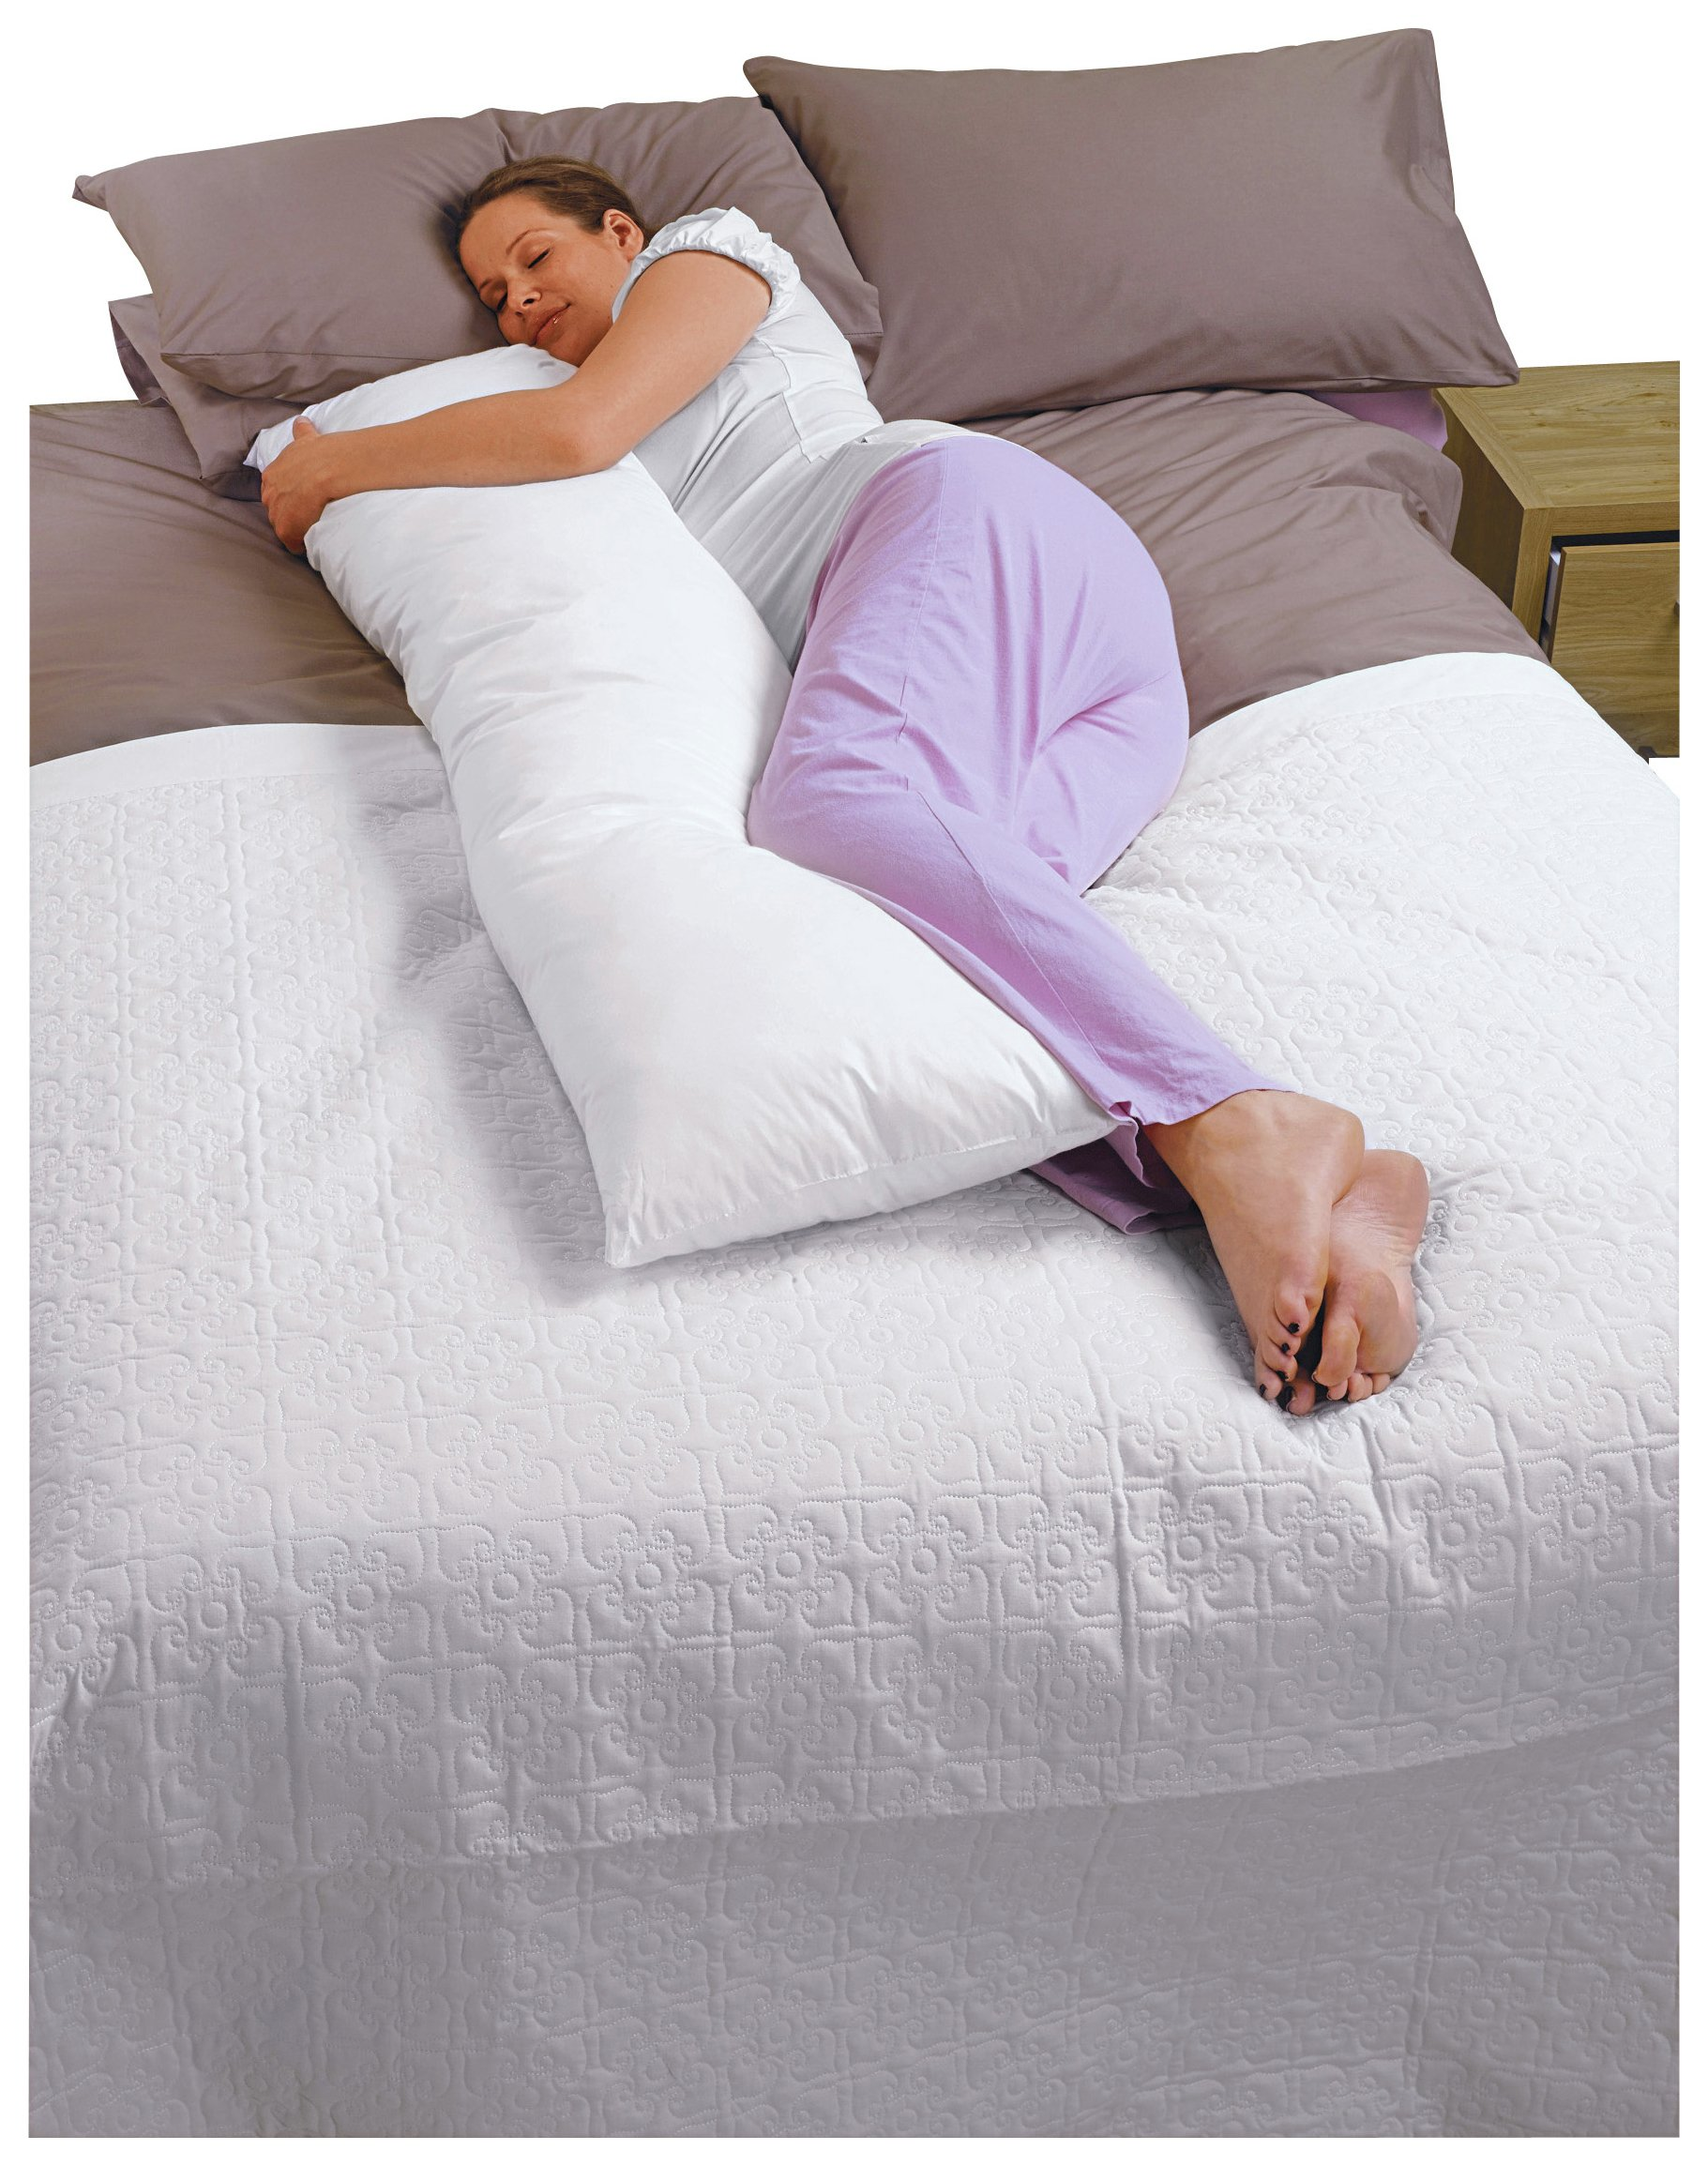 cuggl-sleep-body-pillow